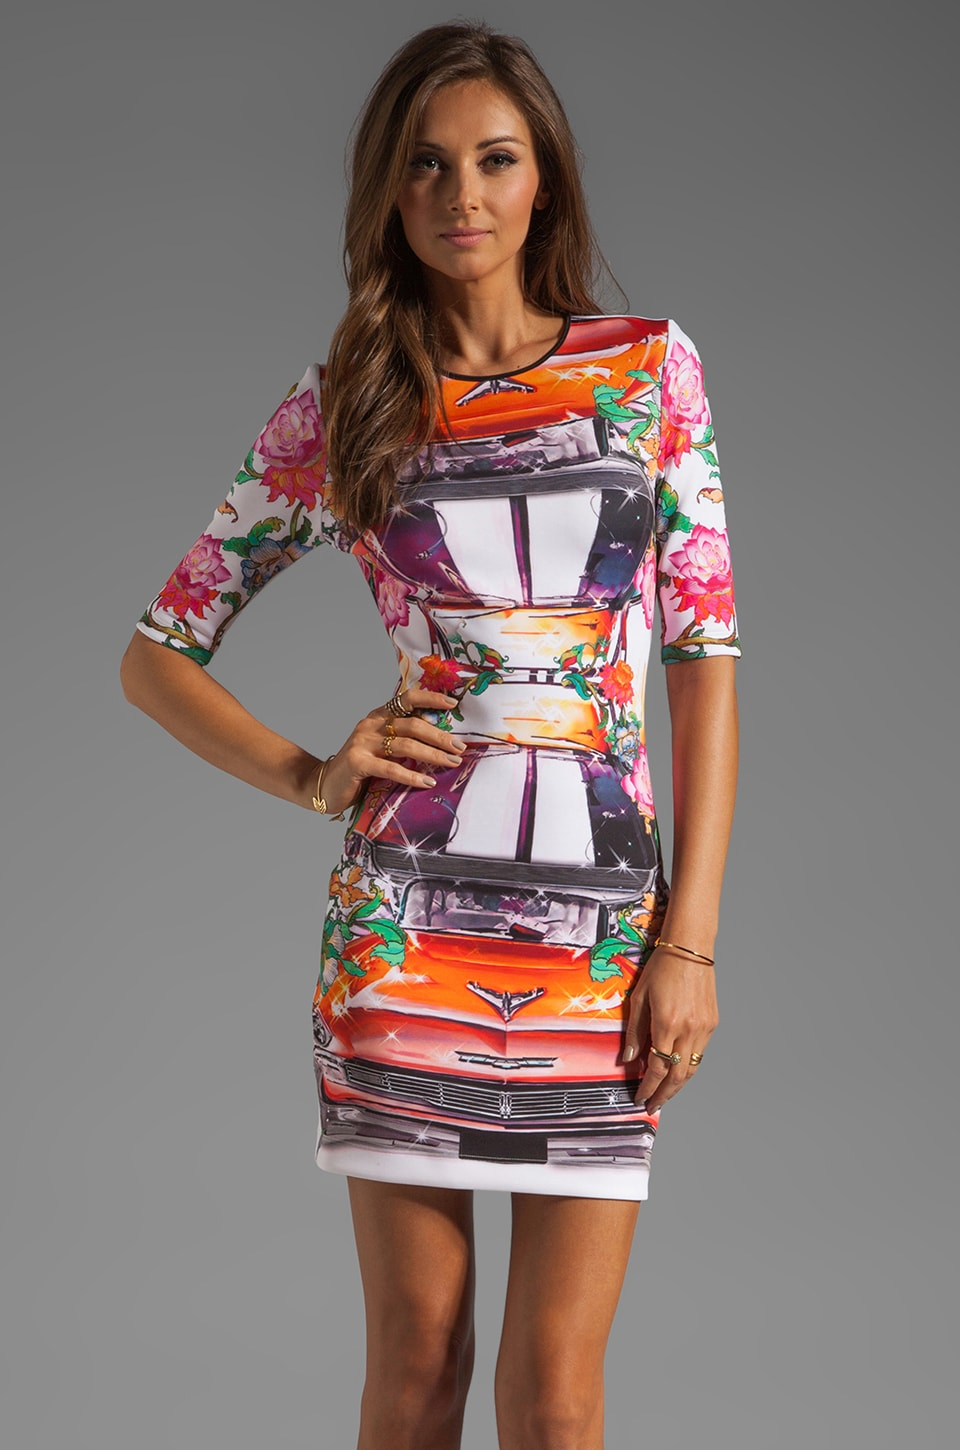 Clover Canyon Hydraulics Neoprene Dress in Multi